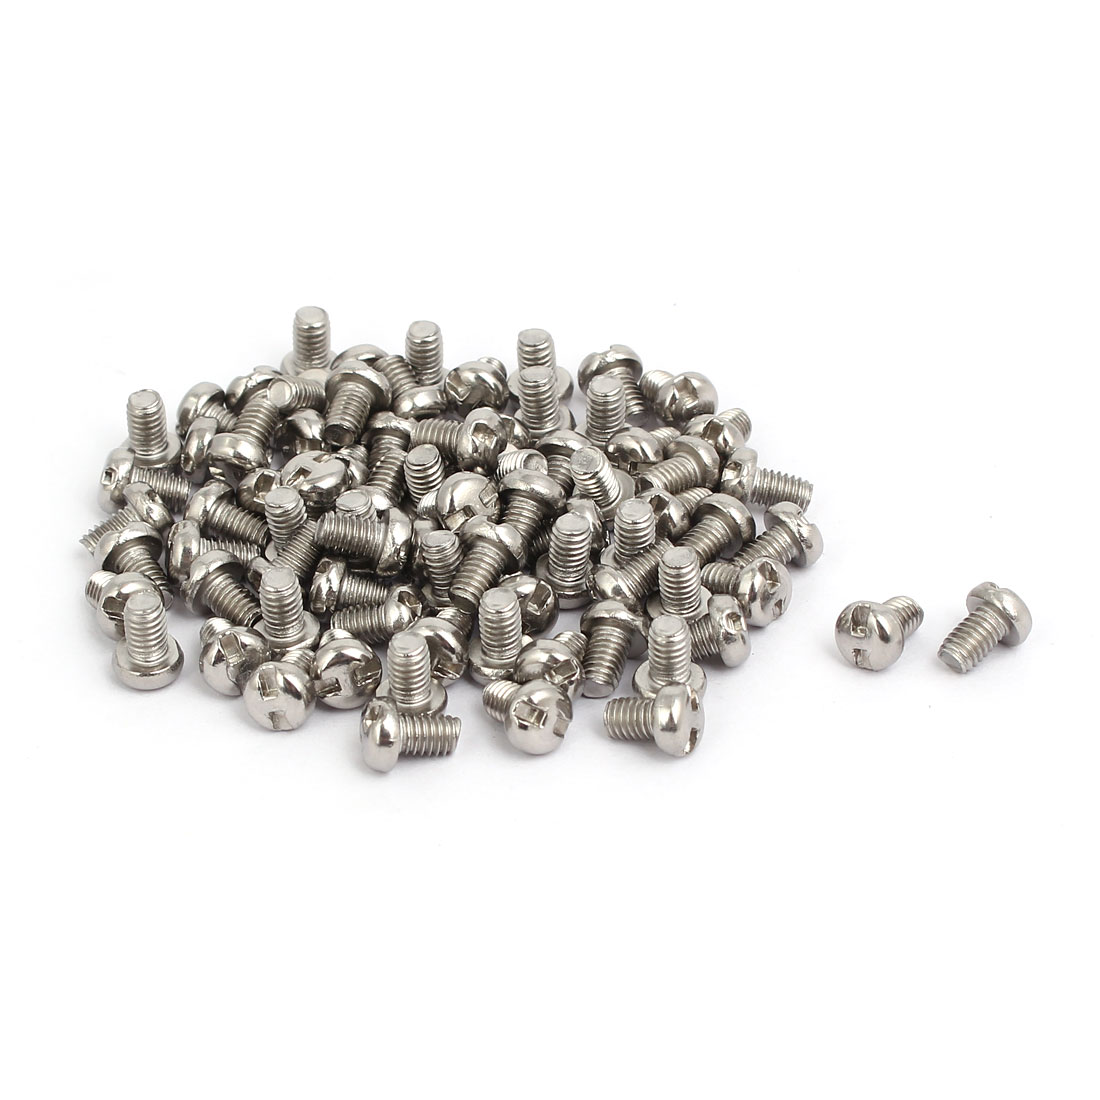 M4x6mm 304 Stainless Steel H-Type Drive Pan Head Tamper Proof Screws 80pcs